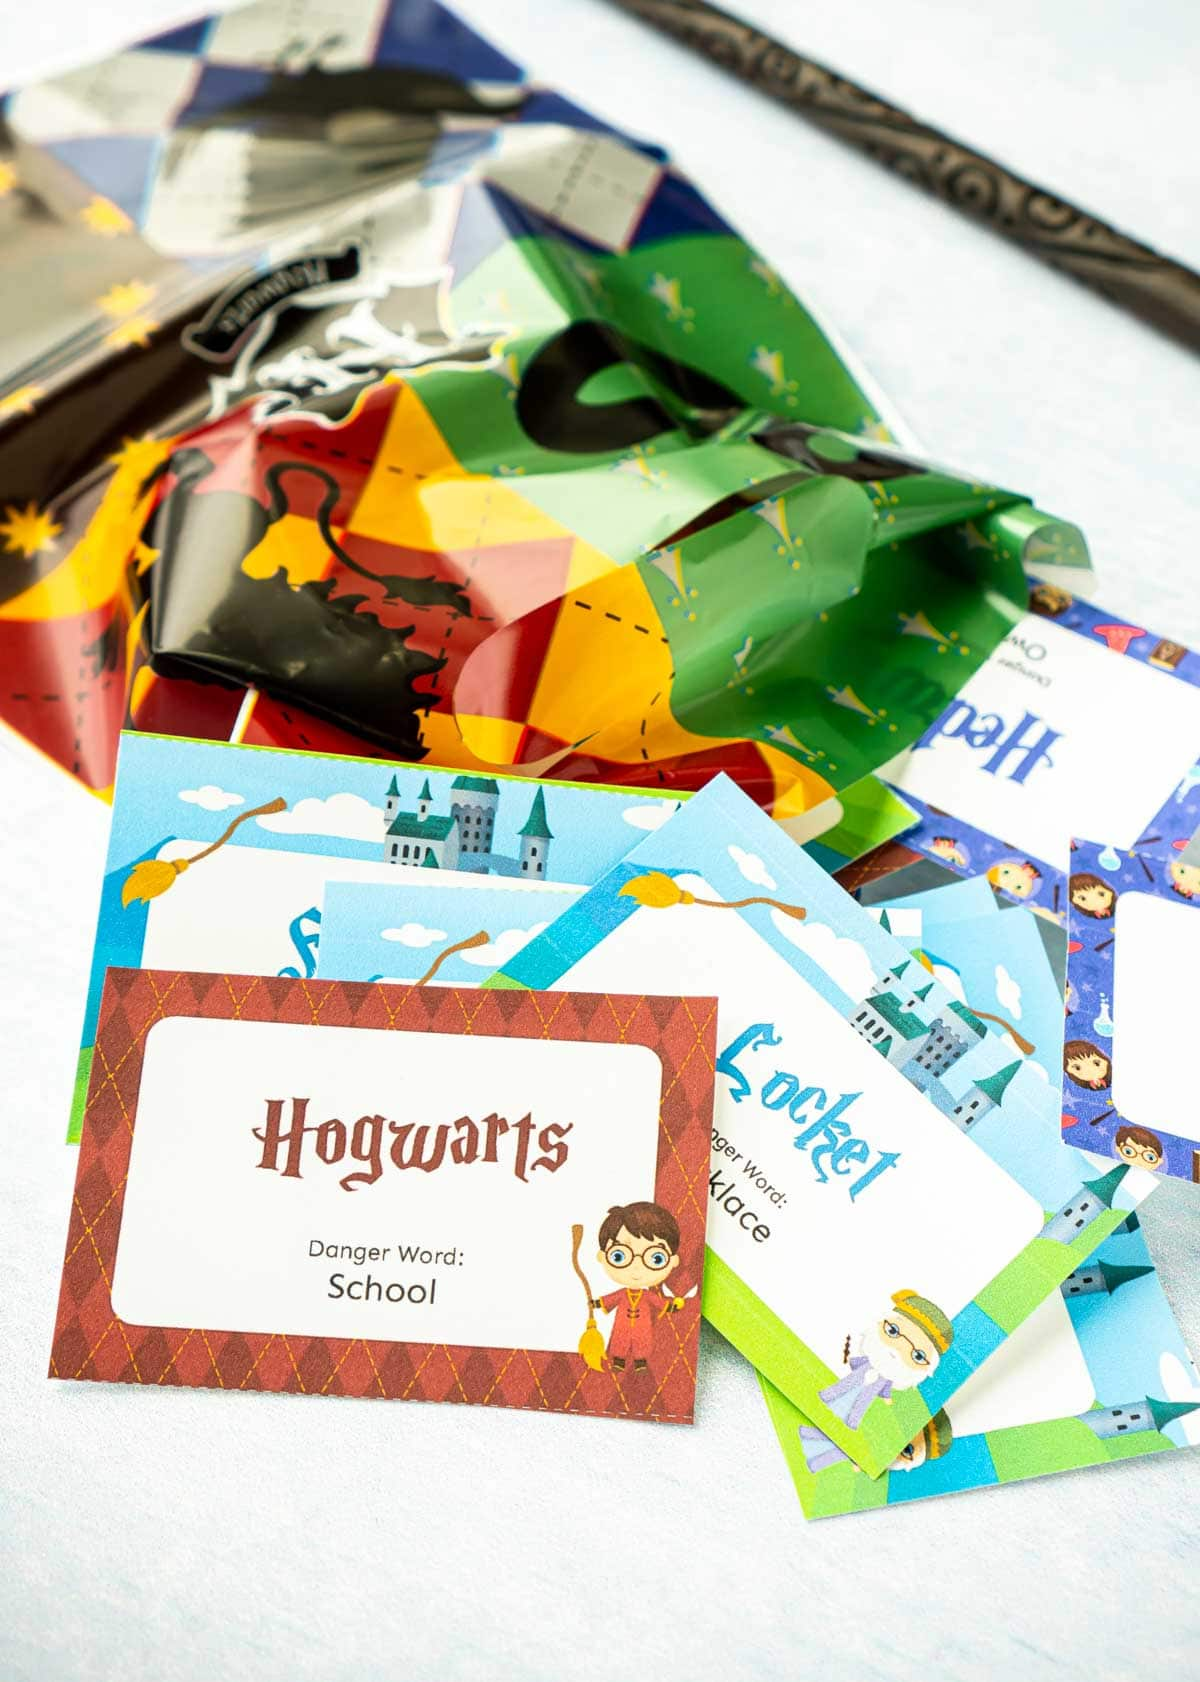 Small paper cards with Harry Potter phrases on them and a Harry Potter goodie bag